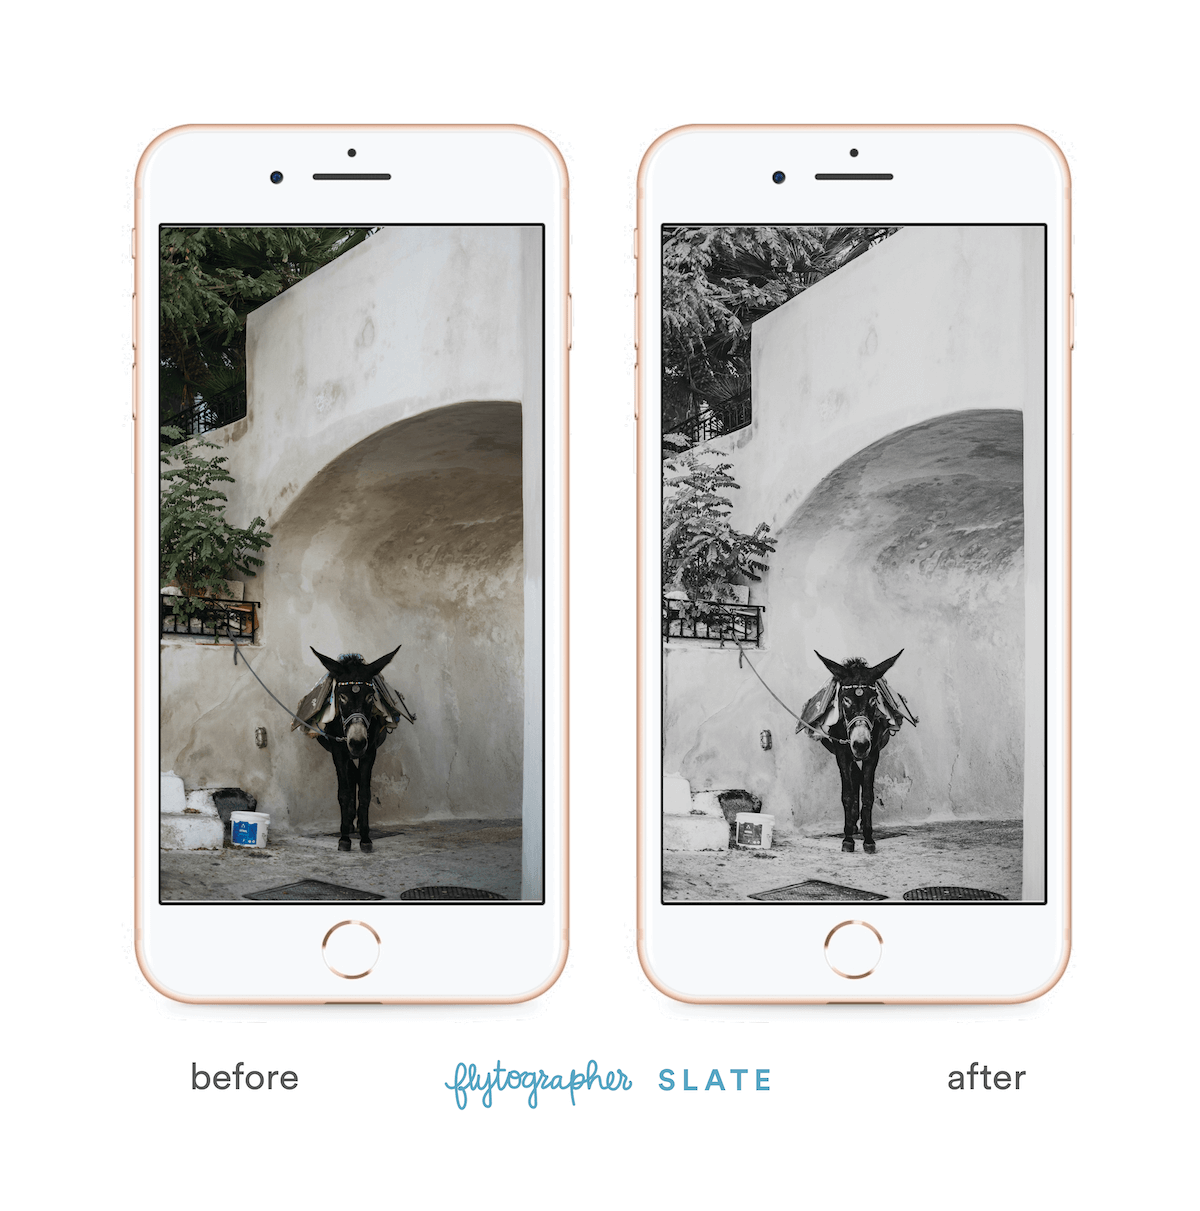 Picture of a donkey before and after 'Flytographer Slate' preset